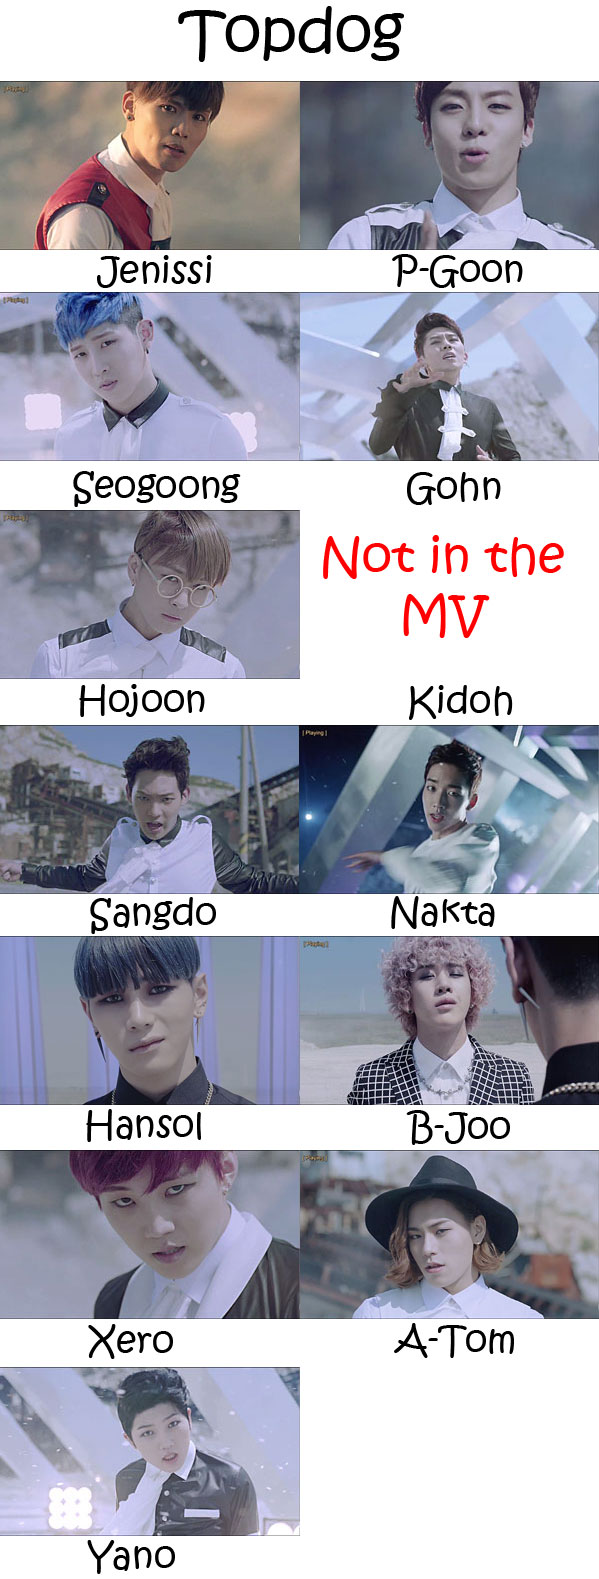 "The members of Topp Dogg in the ""Topdog"" MV"